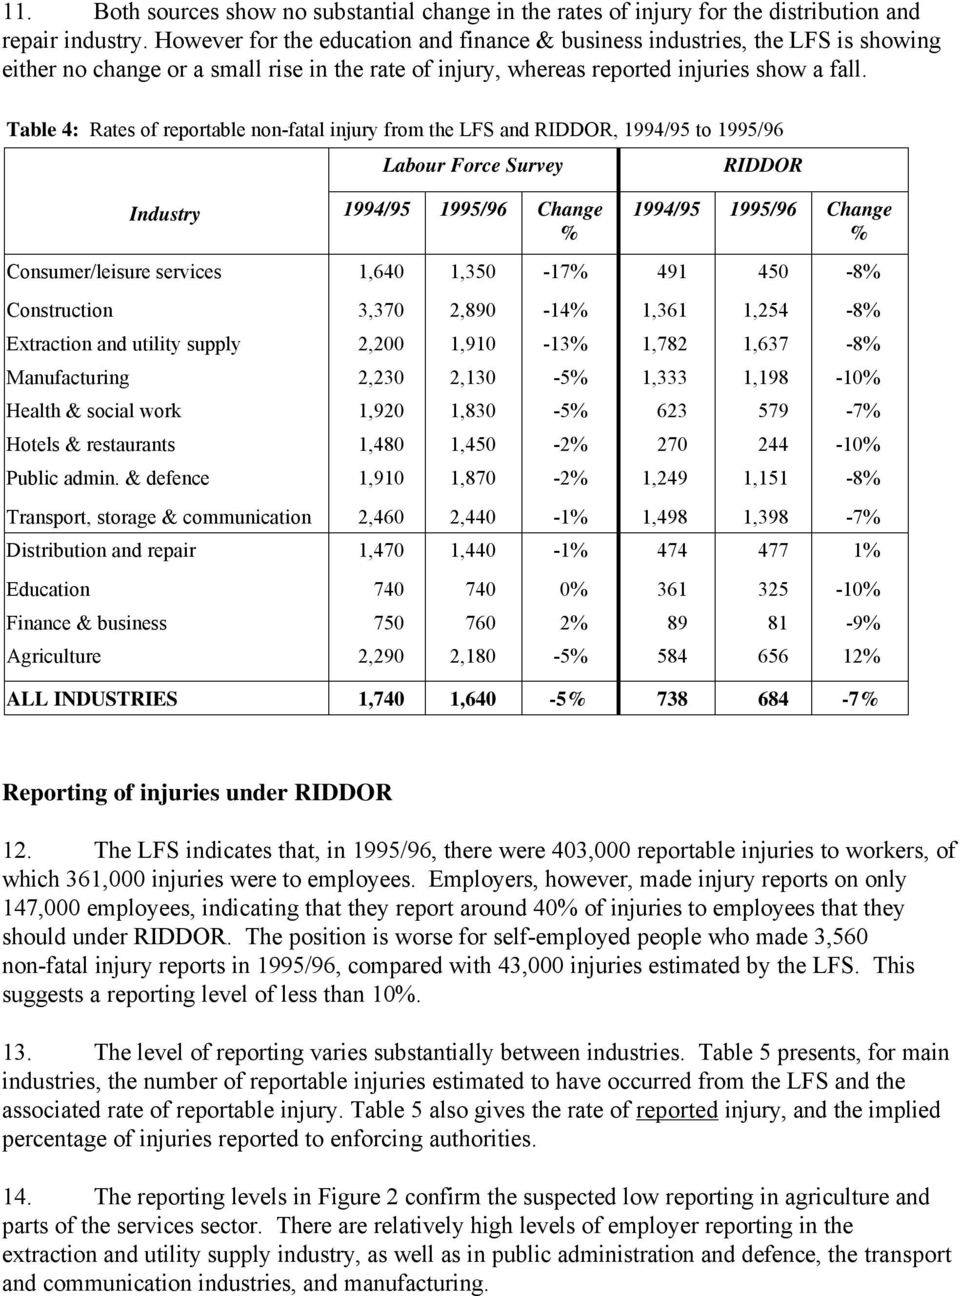 Table 4: Rates of reportable non-fatal injury from the LFS and RIDDOR, 1994/95 to 1995/96 Industry Labour Force Survey 1994/95 1995/96 Change % RIDDOR 1994/95 1995/96 Change % Consumer/leisure